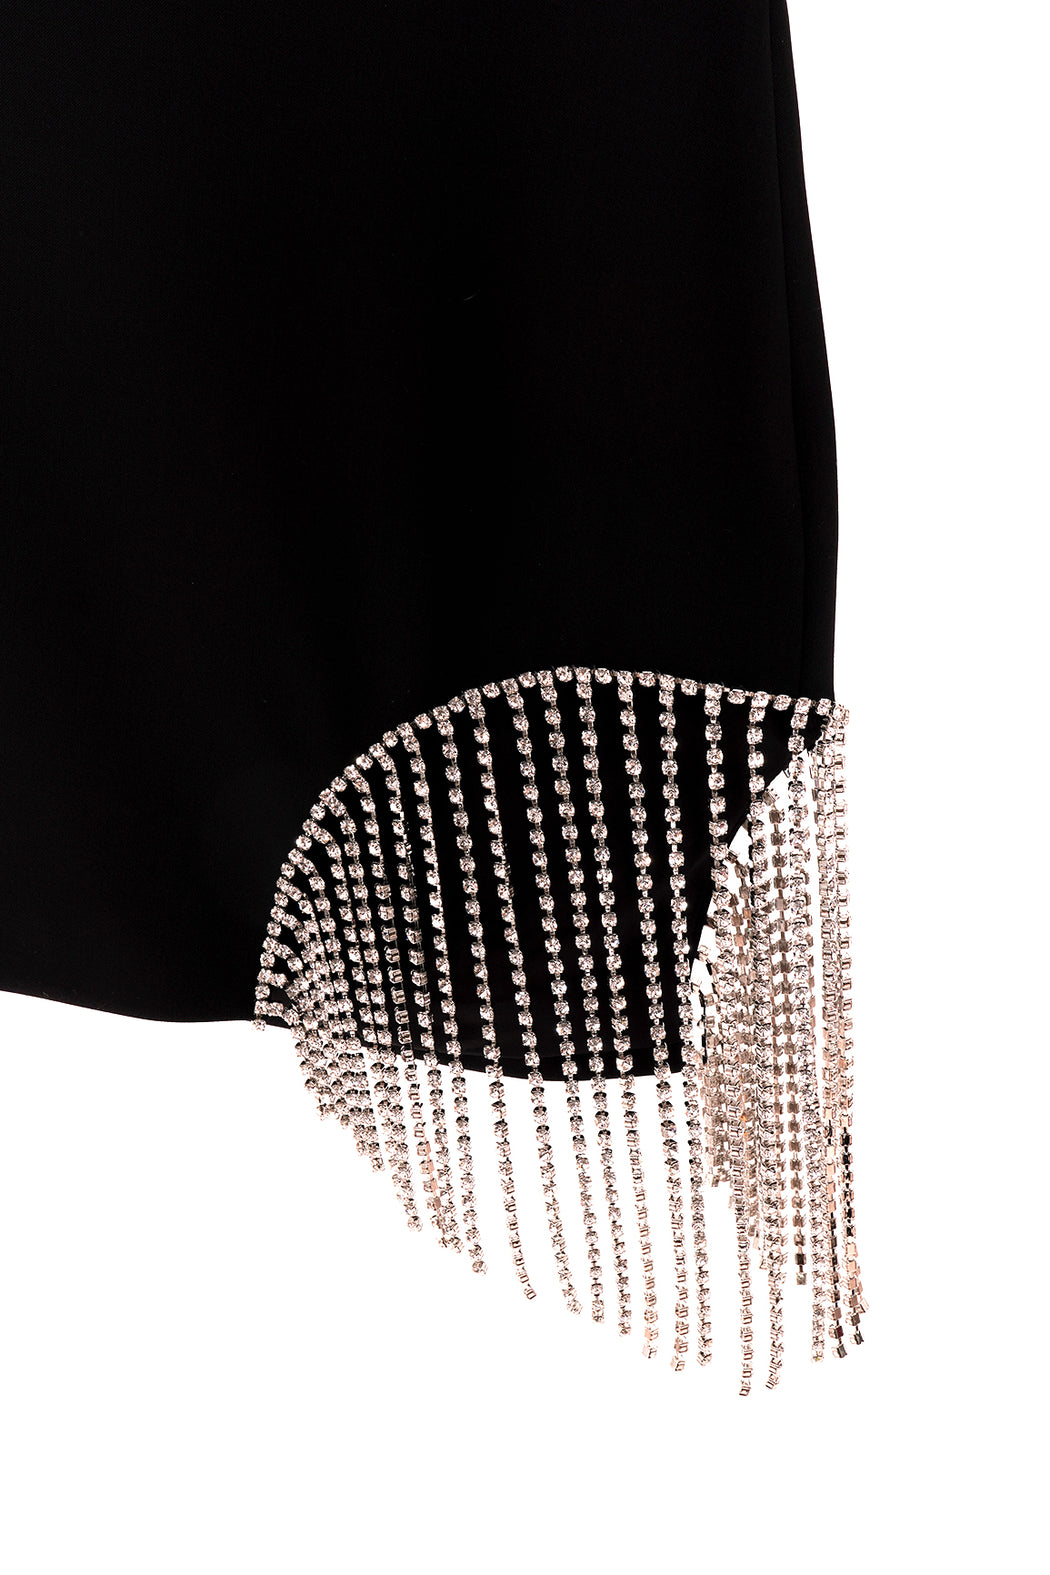 Crystal Fringe Skirt - Black